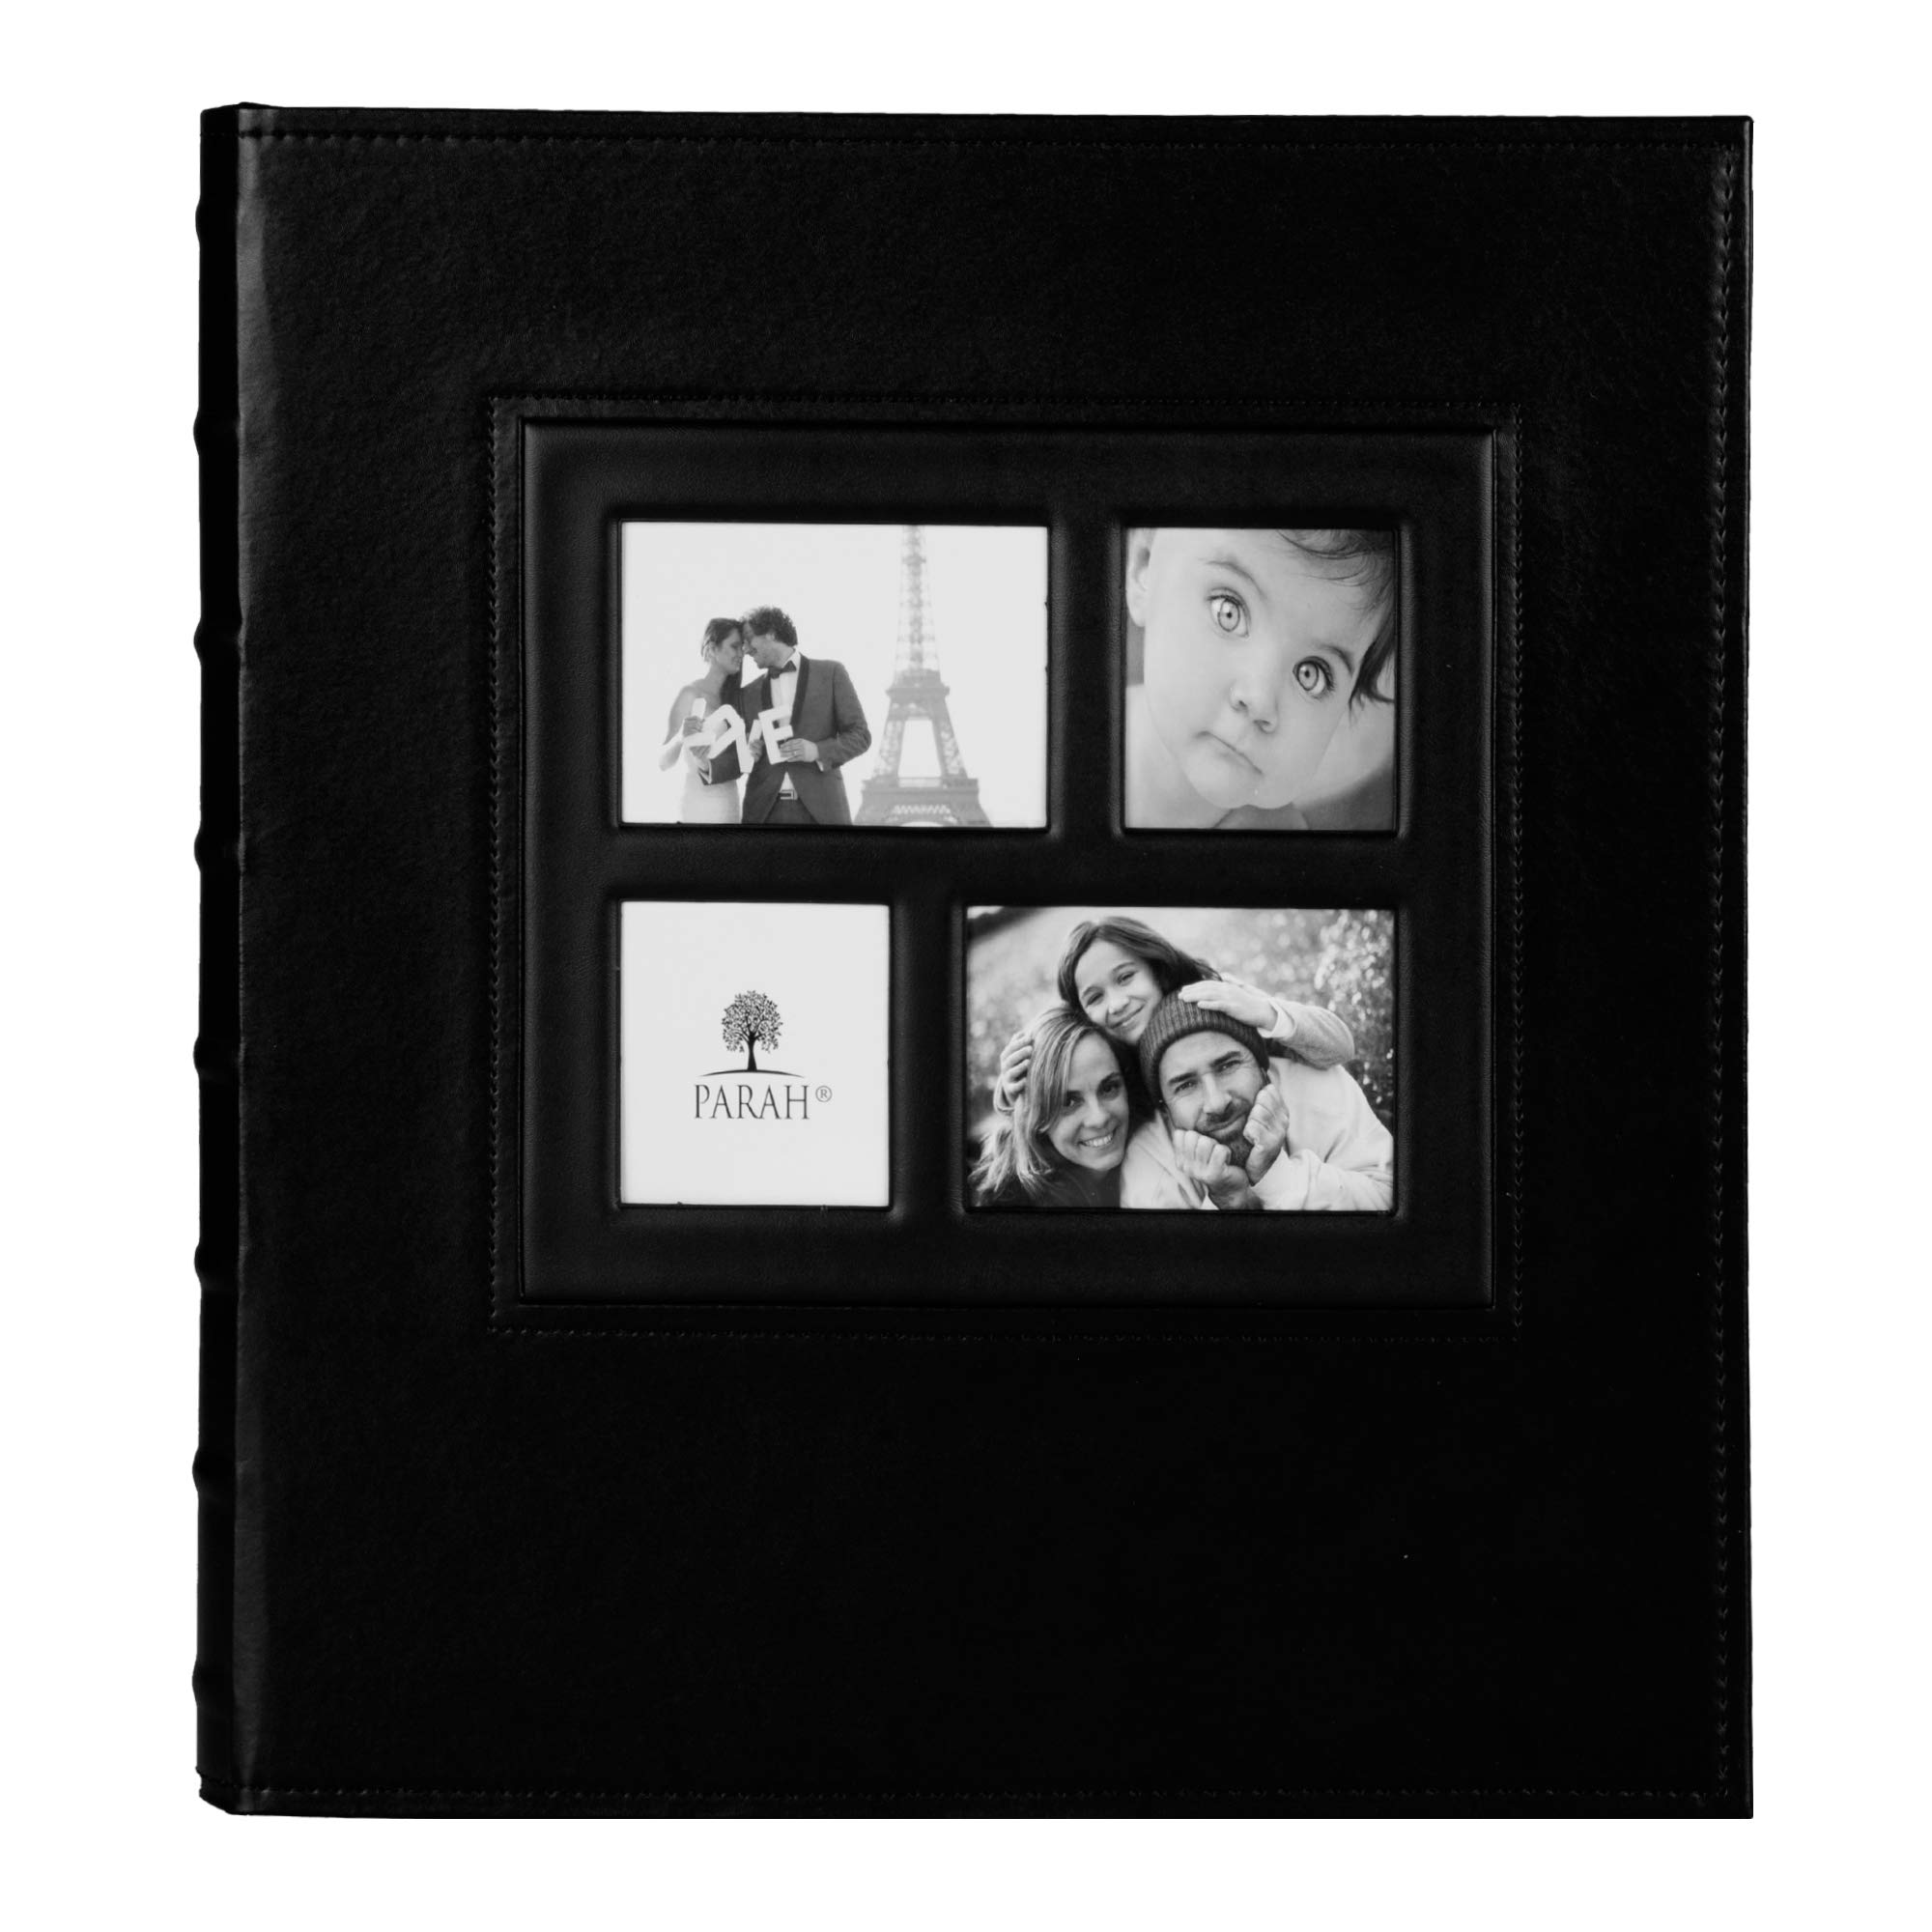 PARAH LIFE Premium 500 Photo Family Wedding Anniversary Baby Vacation Album Sewn Bonded Leather Book Bound Multi Directional 500 4x6 Photos 5 Per Page Large Capacity Deluxe Customizable Black by PARAH LIFE